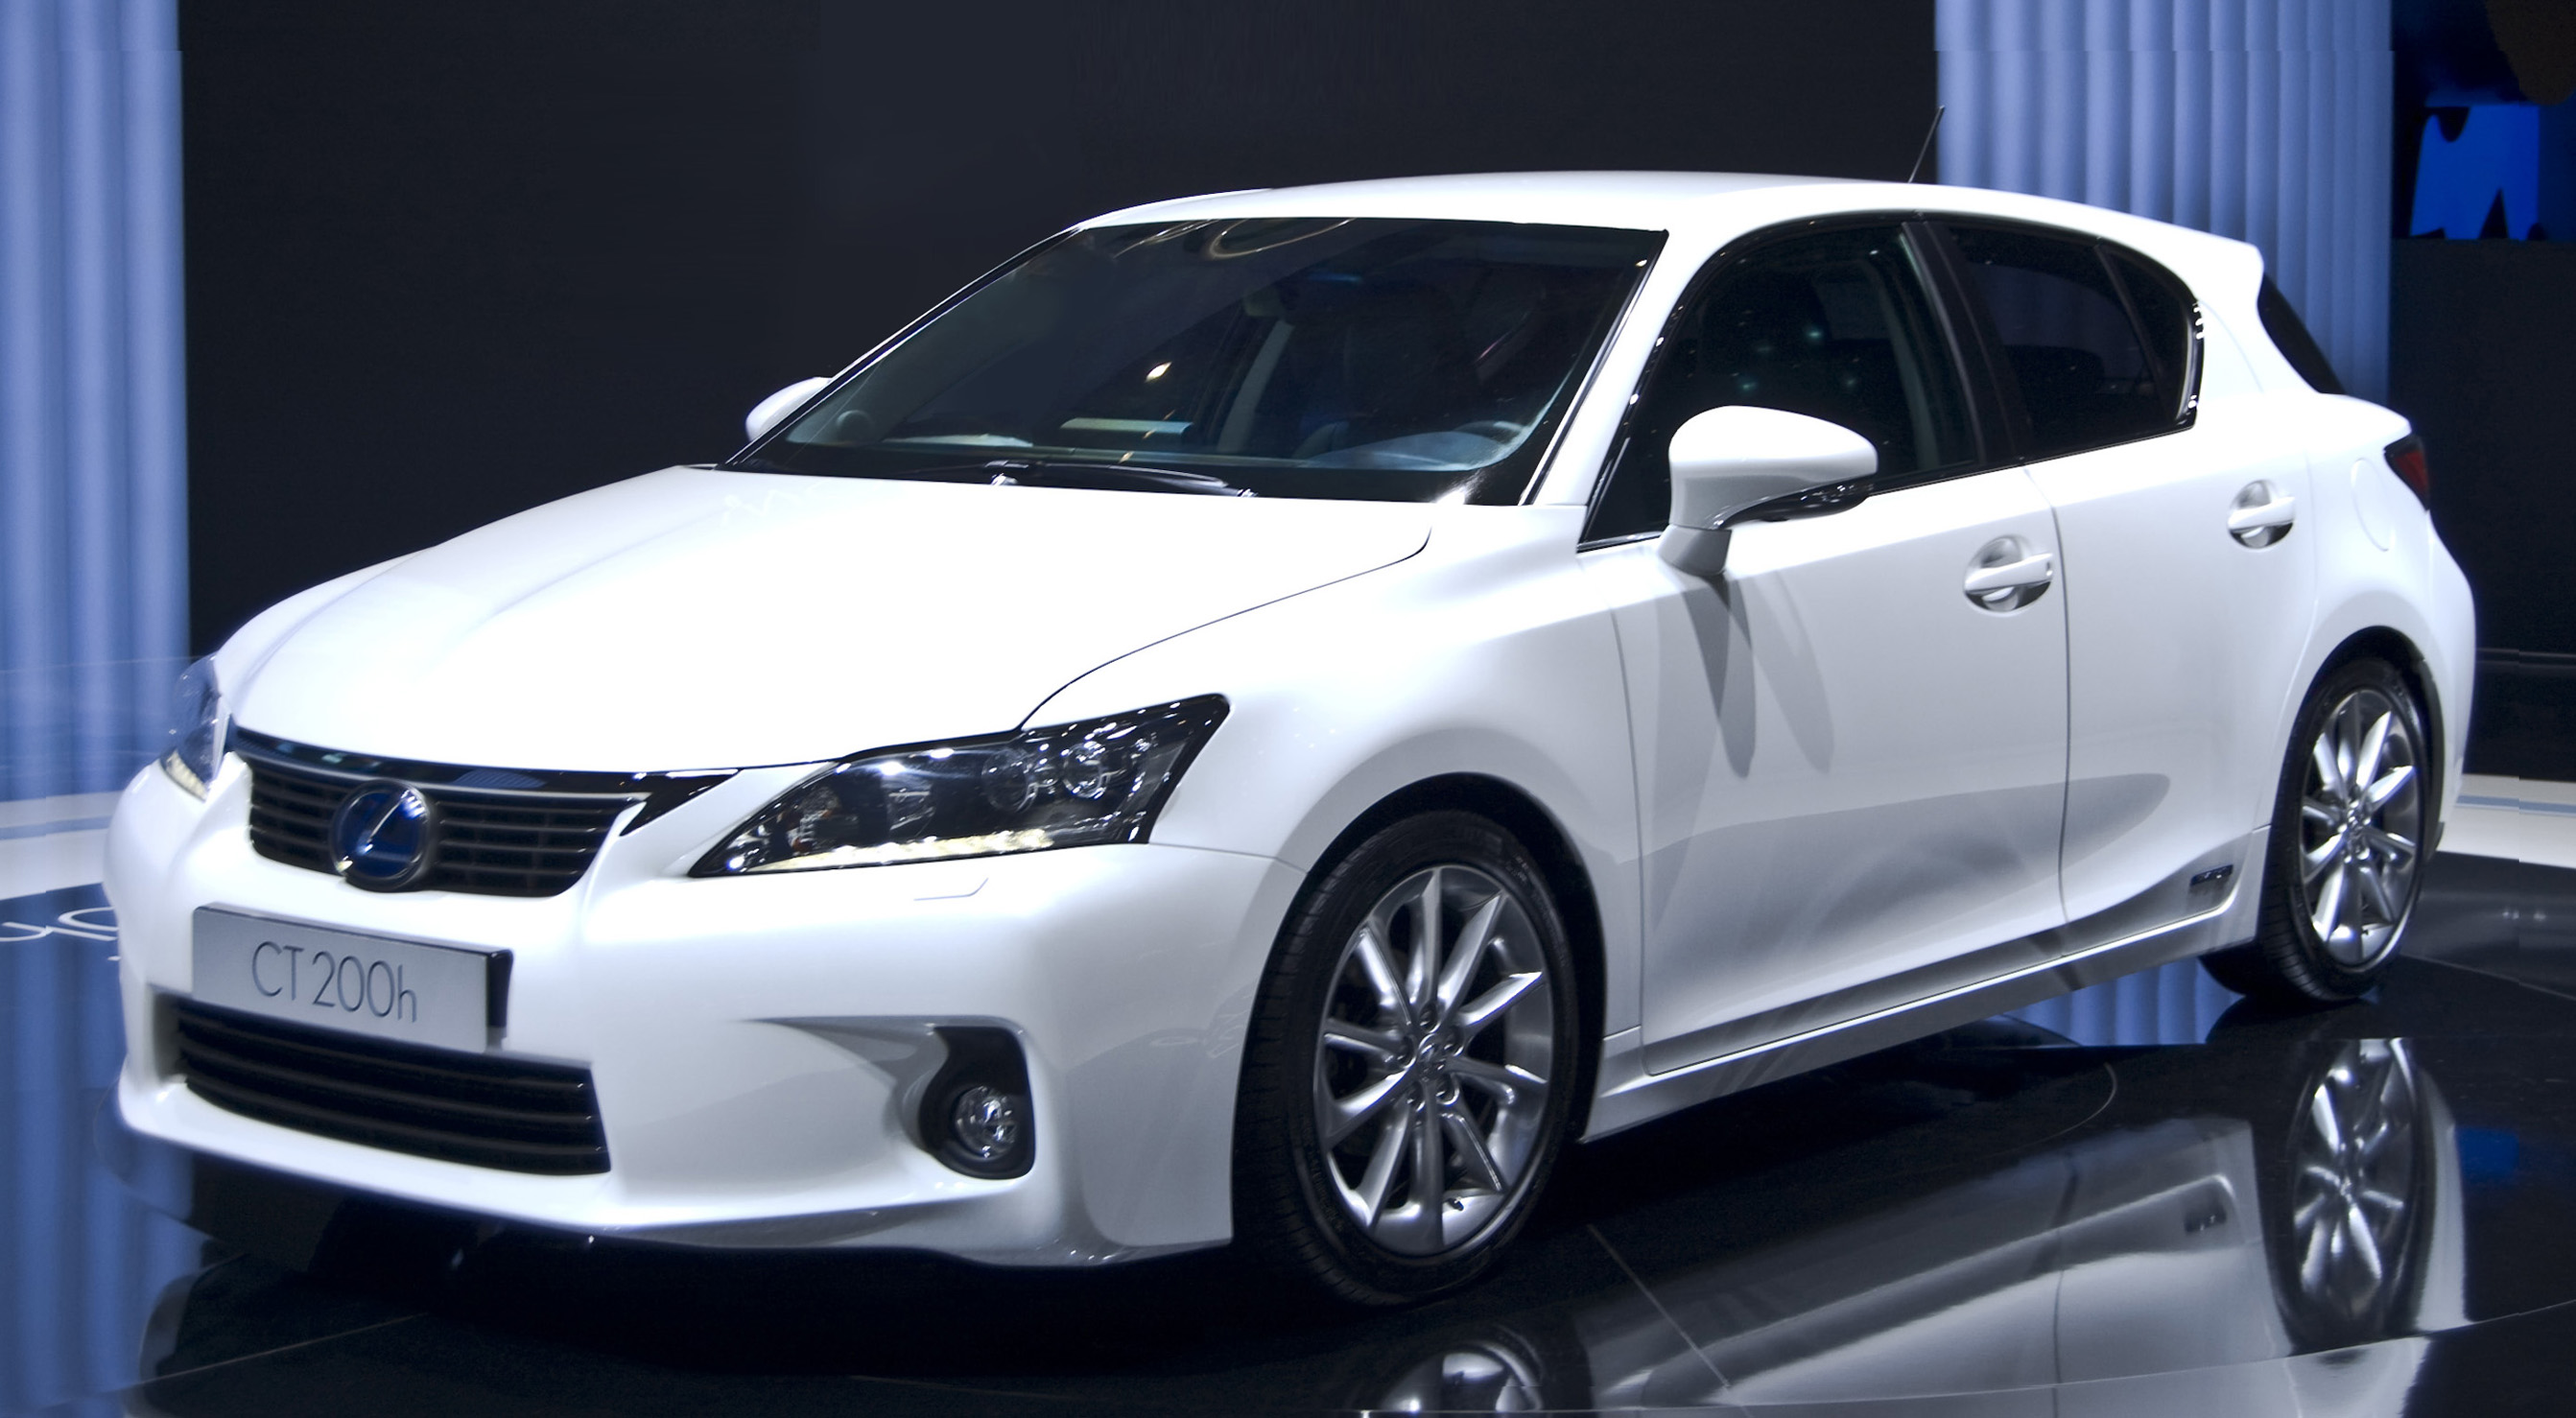 hatchback luxury dynamic upgraded media carandtruck offered social refined interior compact more this ct a lexus exterior sophisticated revealed blog the ca styling in with